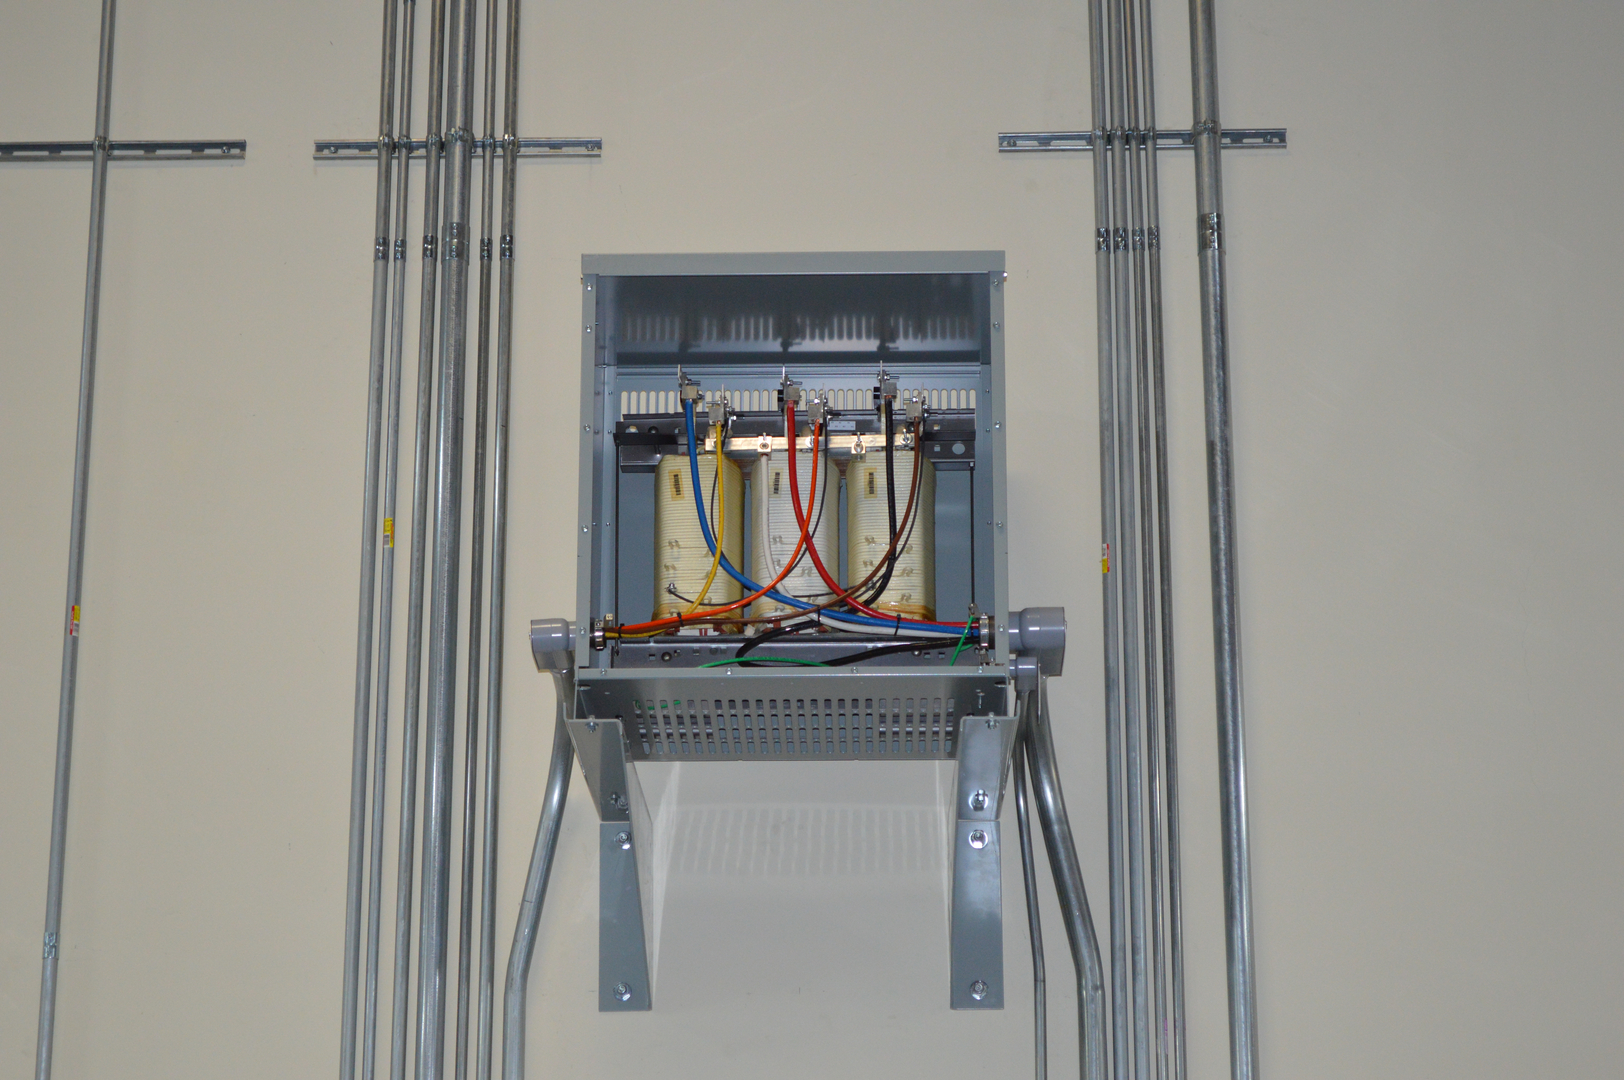 Commercial Electrical Contractors All American Electric Covina Wiring Contractor Specializing In High Voltage Transformers Local Codes Permitting And Safety